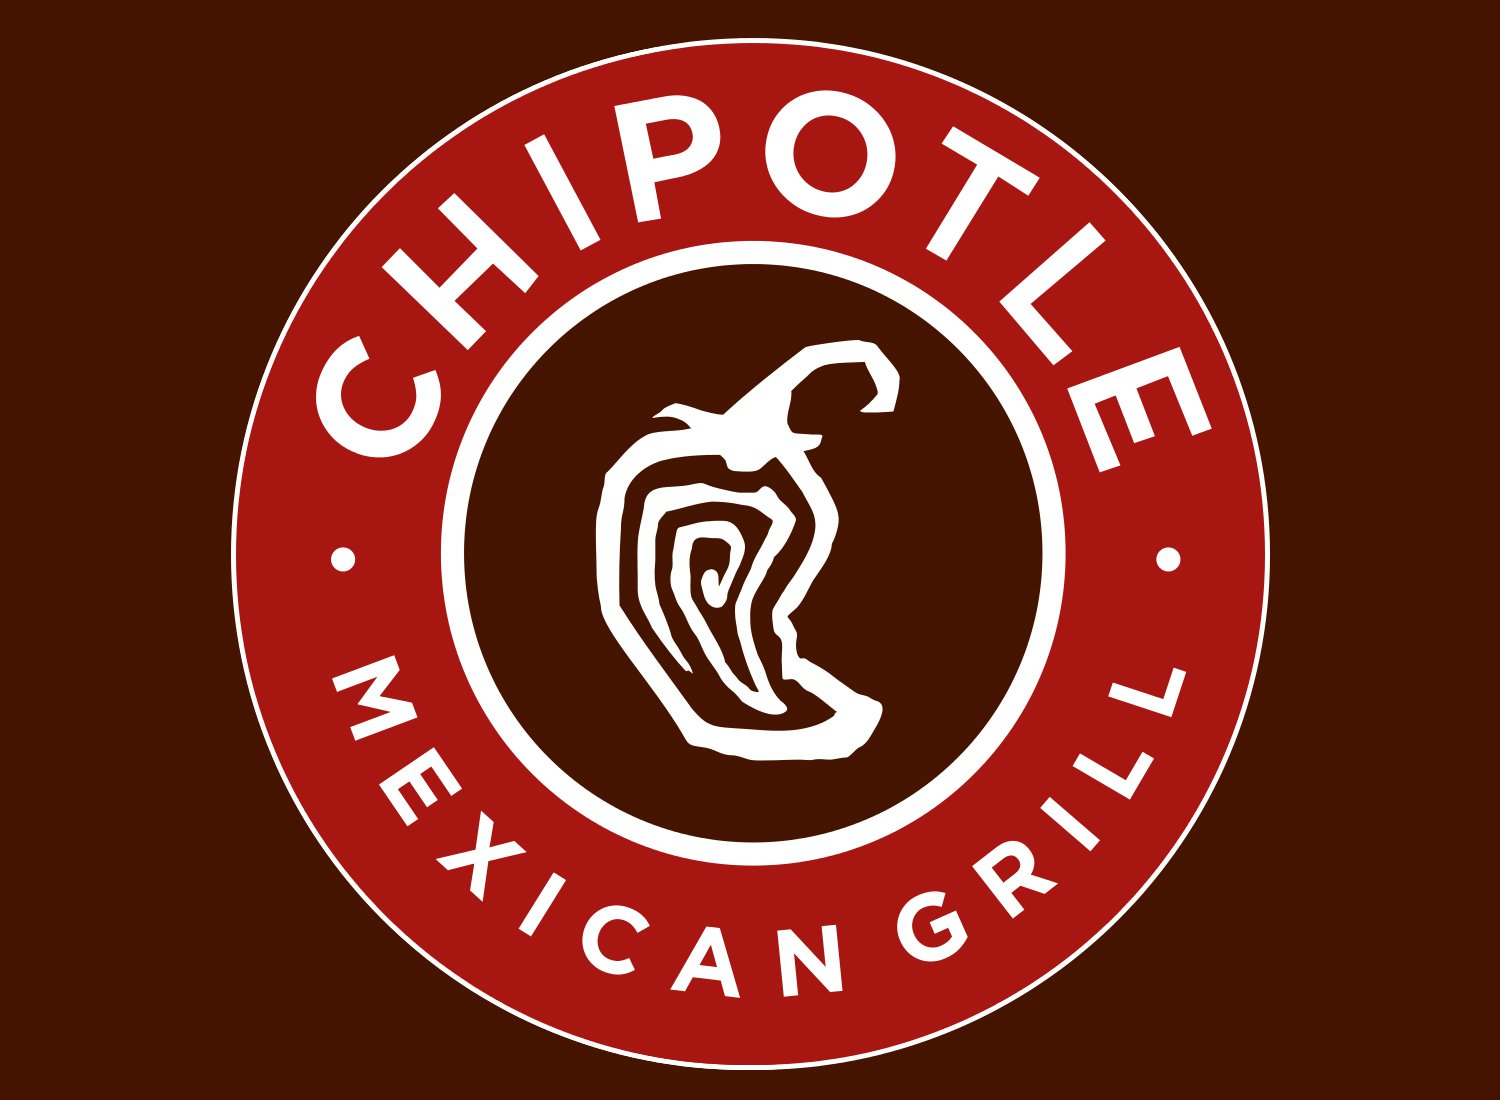 Meaning Chipotle logo and symbol.